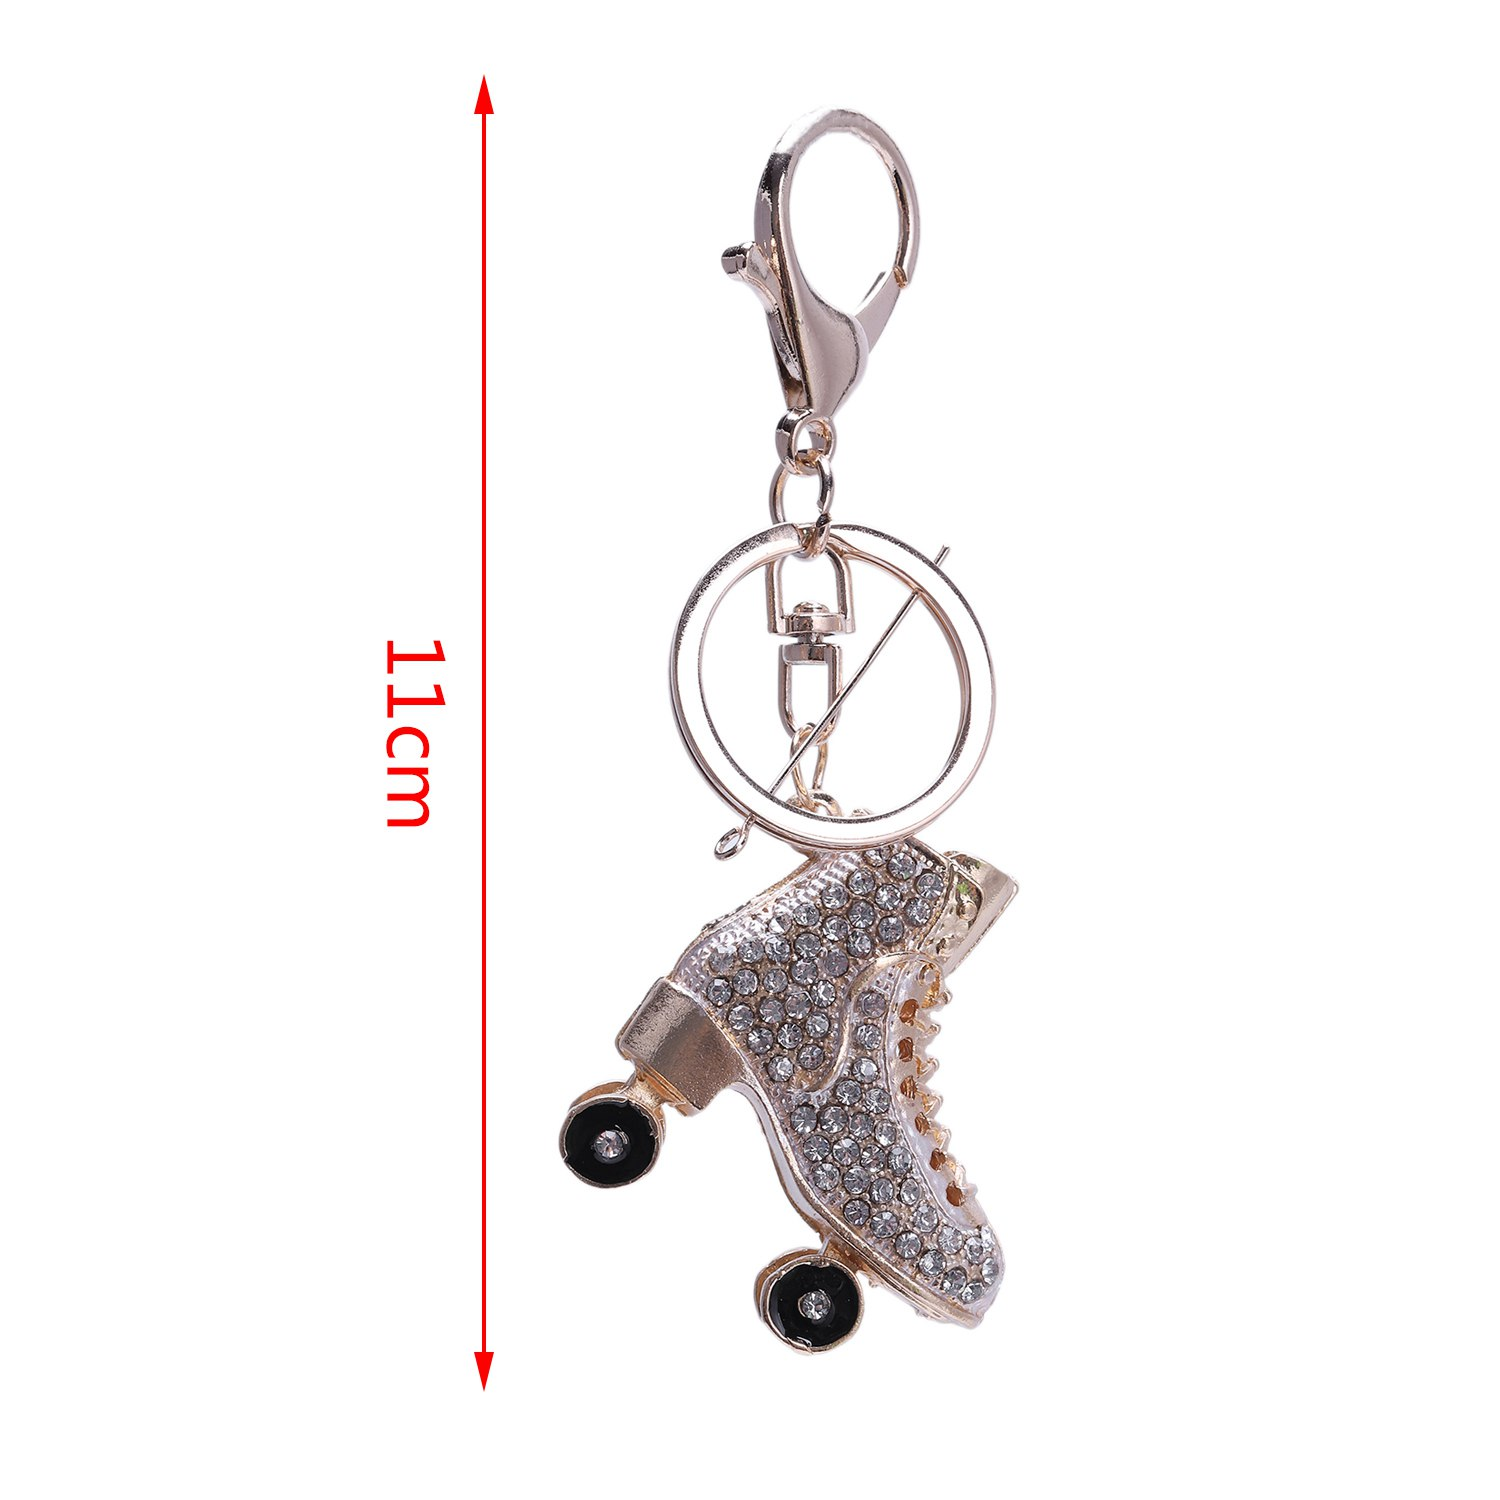 4X-Keyring-Bag-Charm-Pendant-Keys-Holder-Roller-Skates-Shoe-Keychain-Jewelr3L4 thumbnail 16